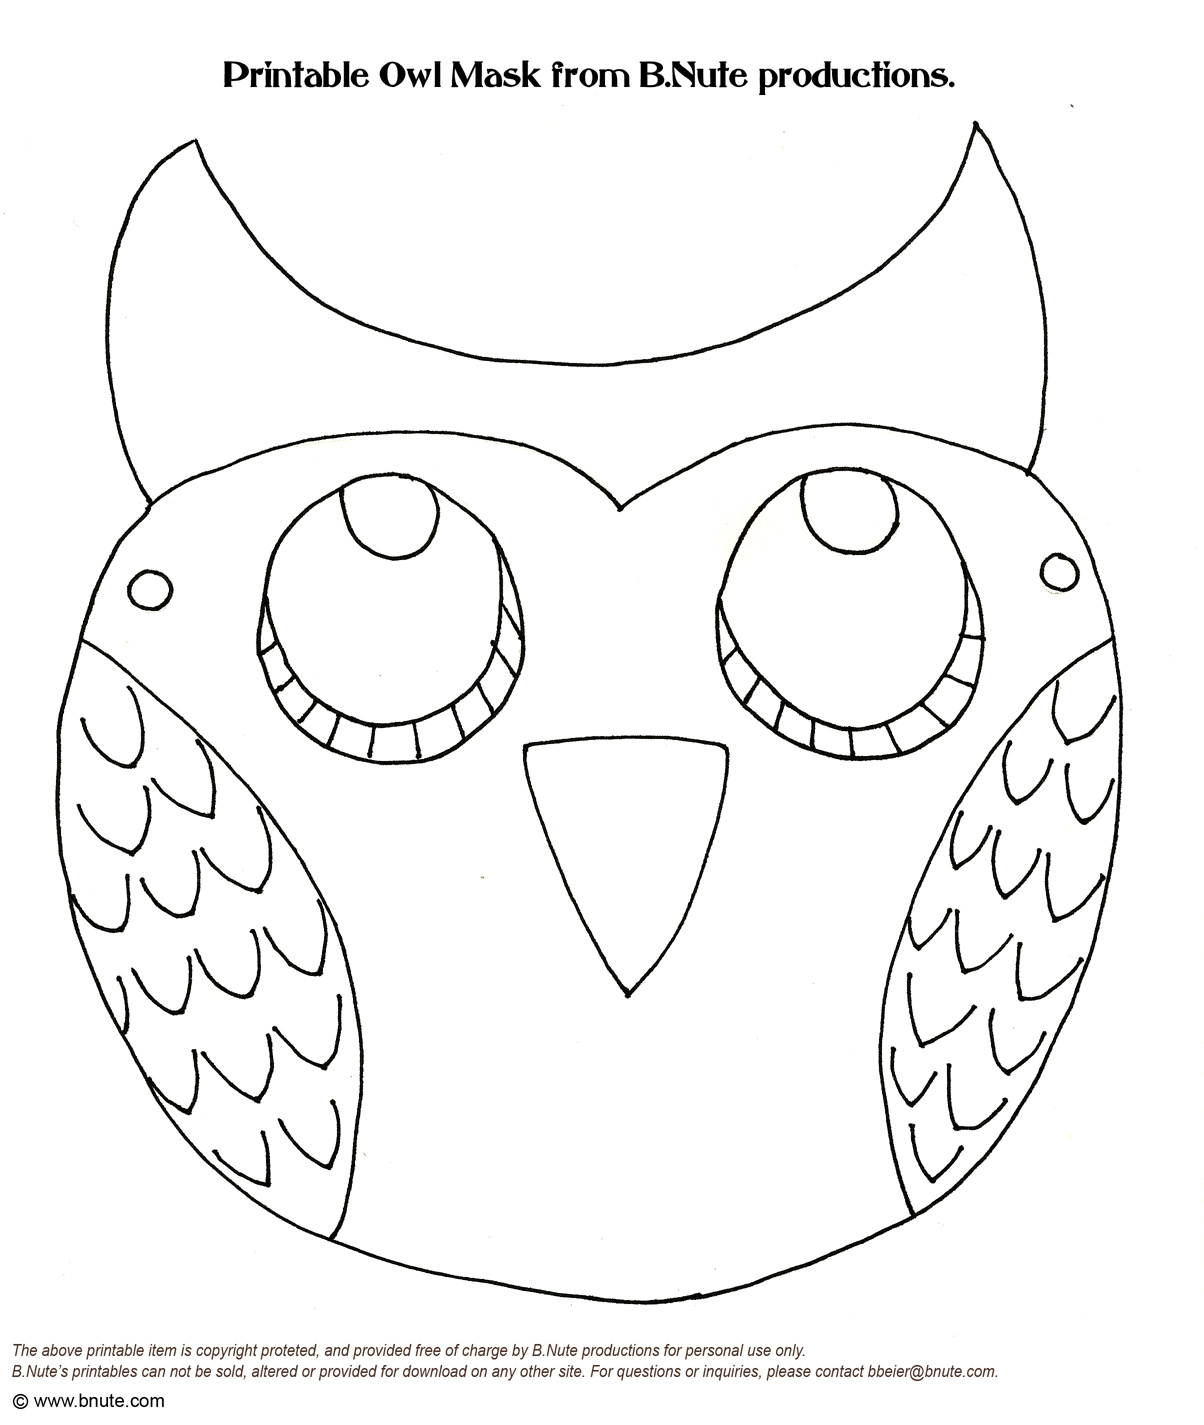 Adaptable image with regard to free printable animal masks